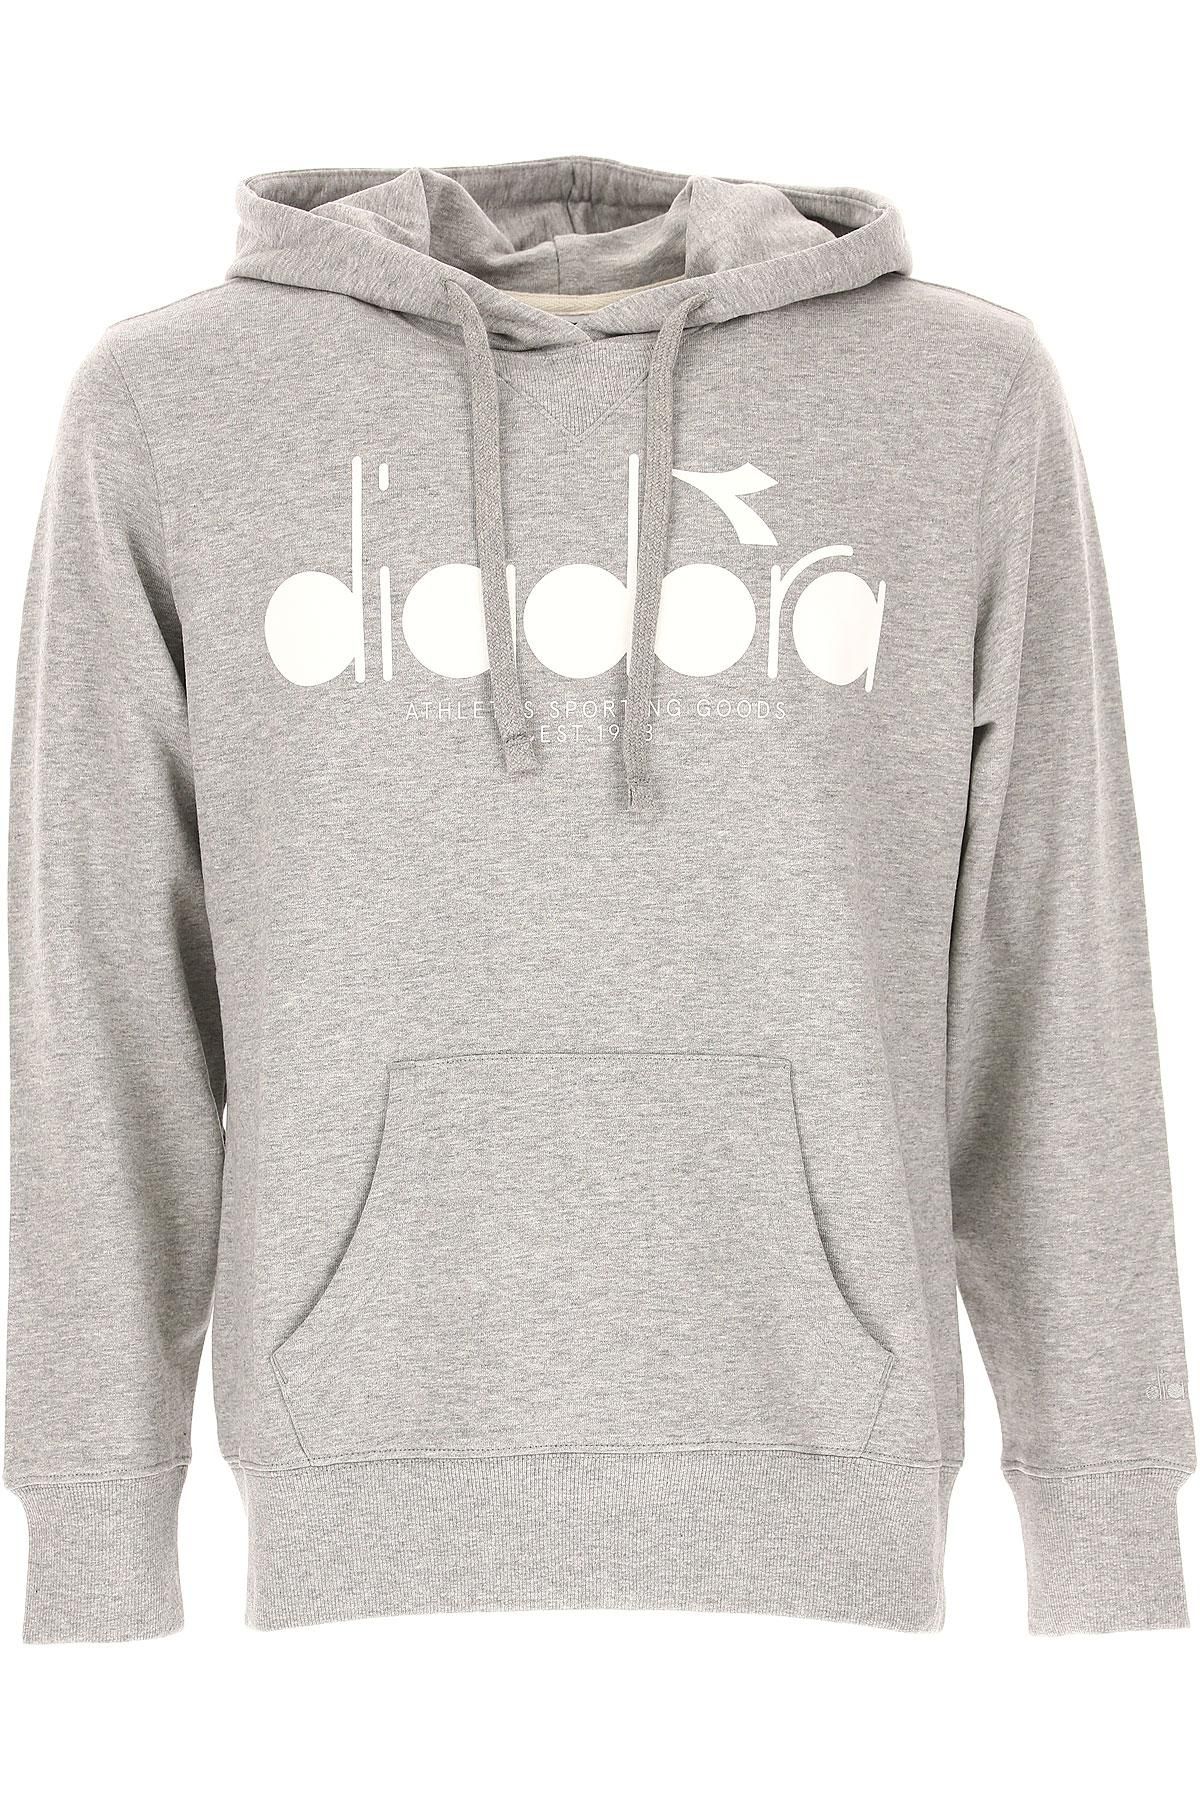 Lyst Diadora Clothing For Men in Gray for Men